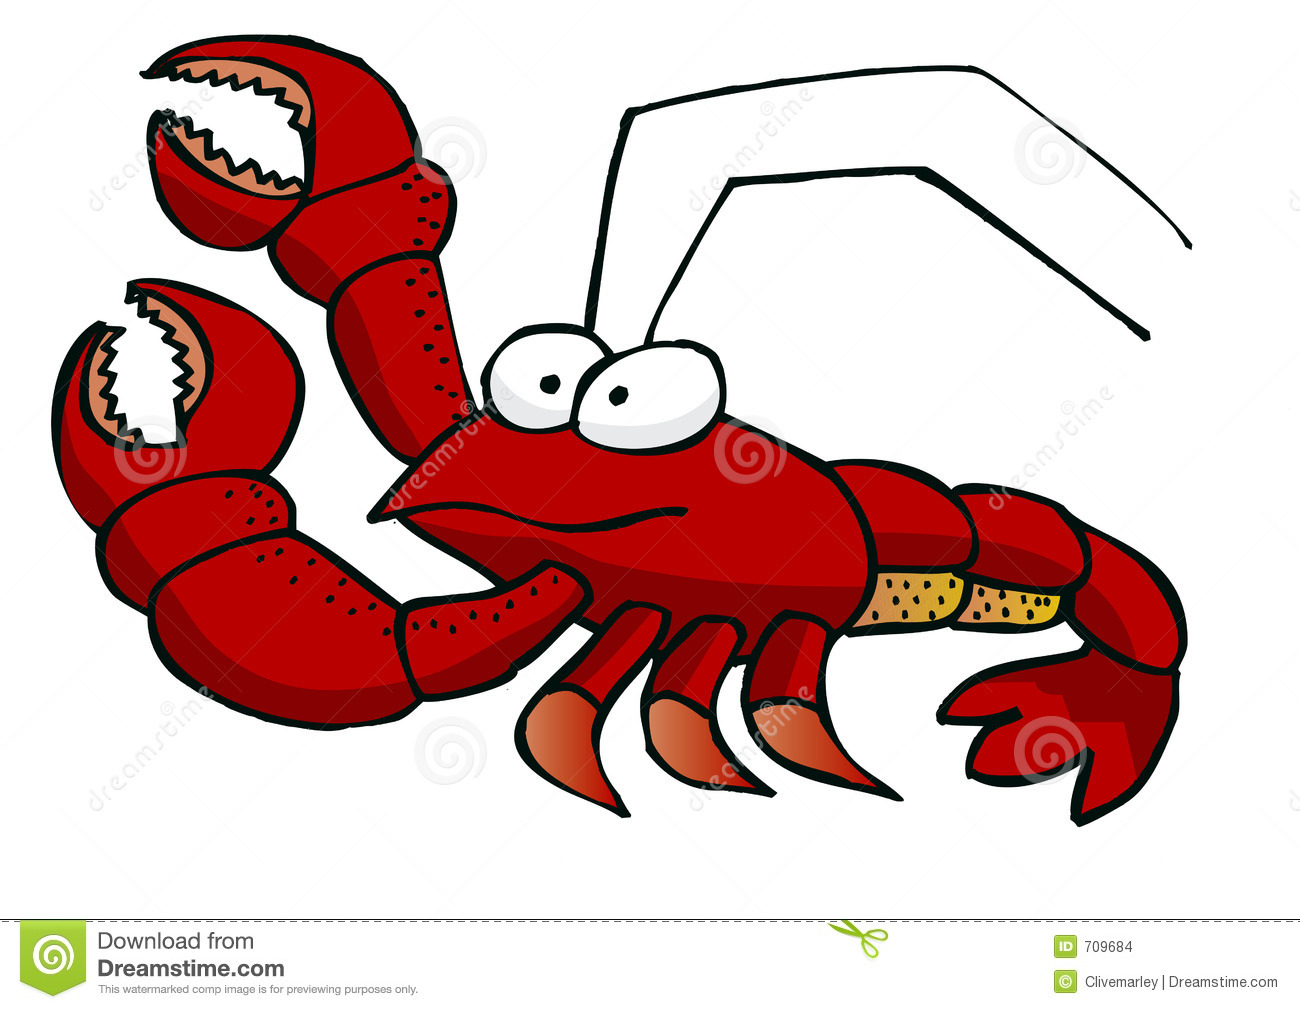 Clipart Lobster Pictures.